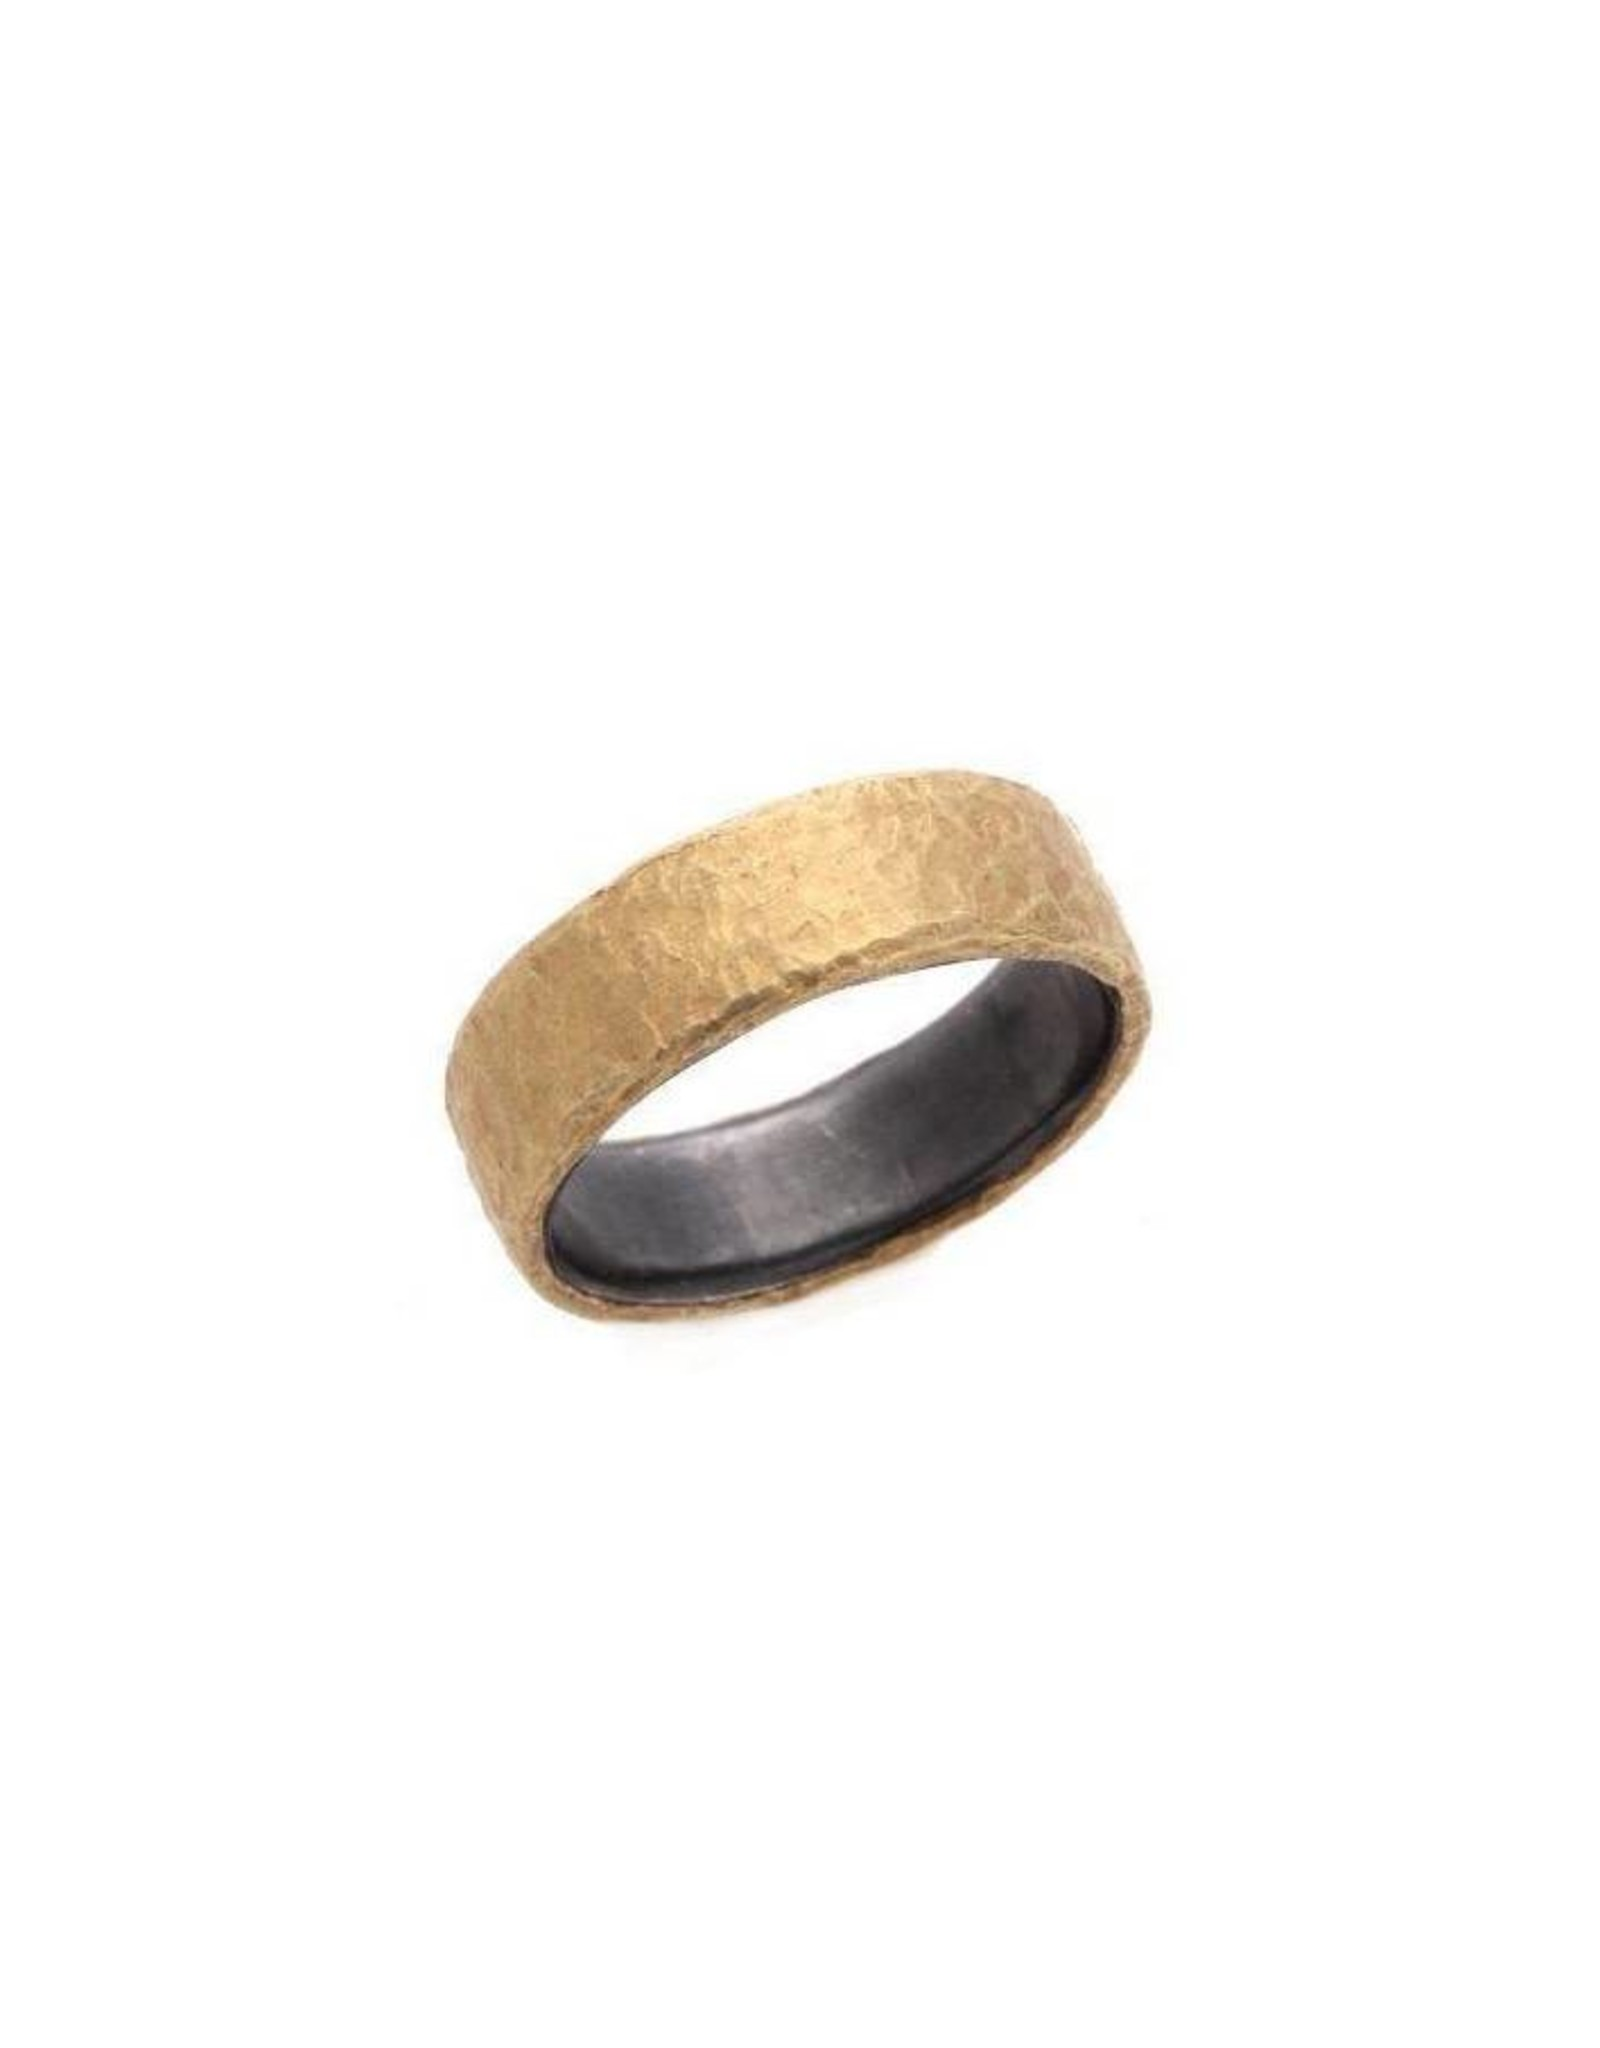 TAP by Todd Pownell Rustic Hammered Band - 18K Yellow Gold